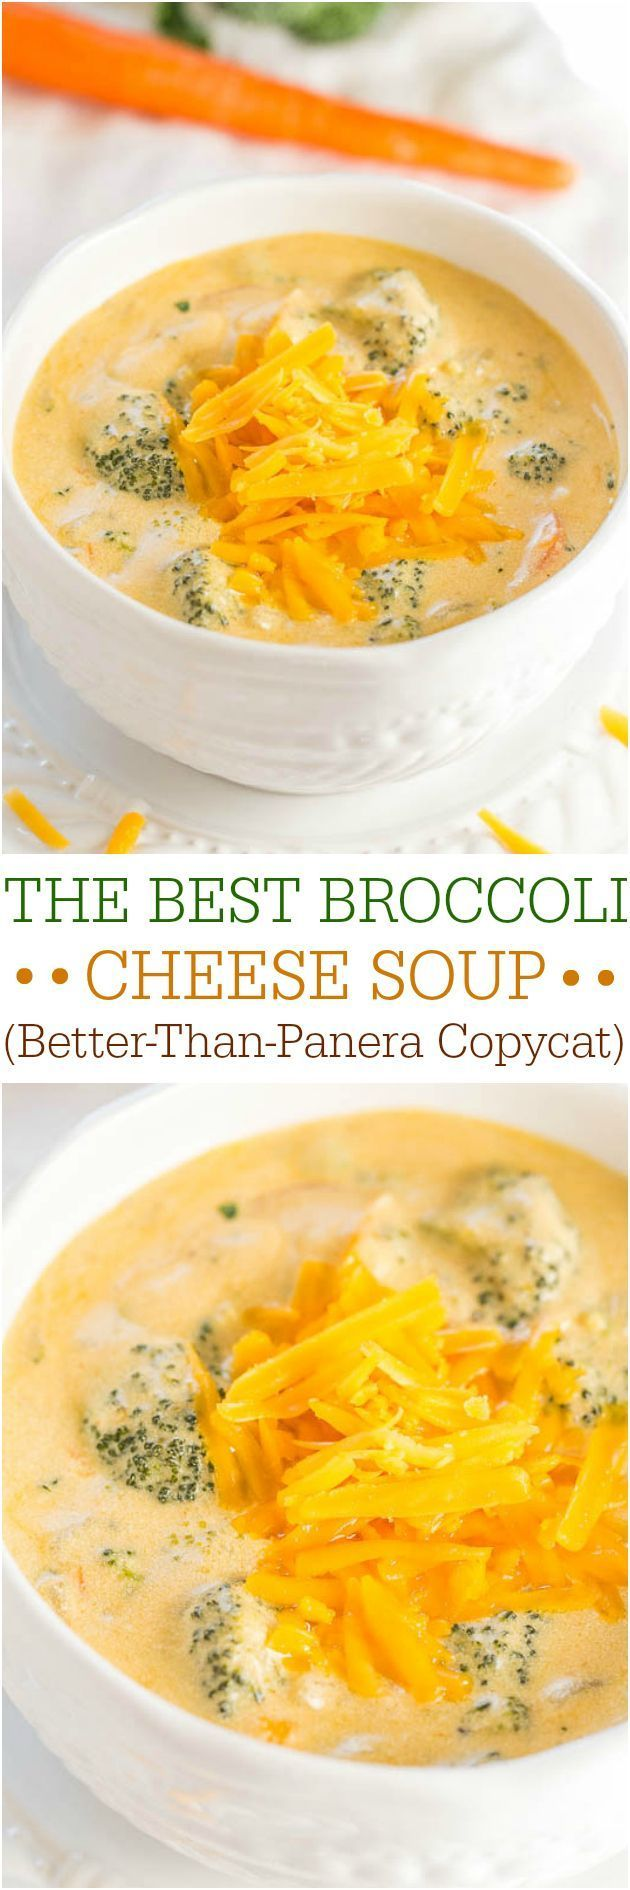 The Best Broccoli Cheese Soup (Better-Than-Panera Copycat)